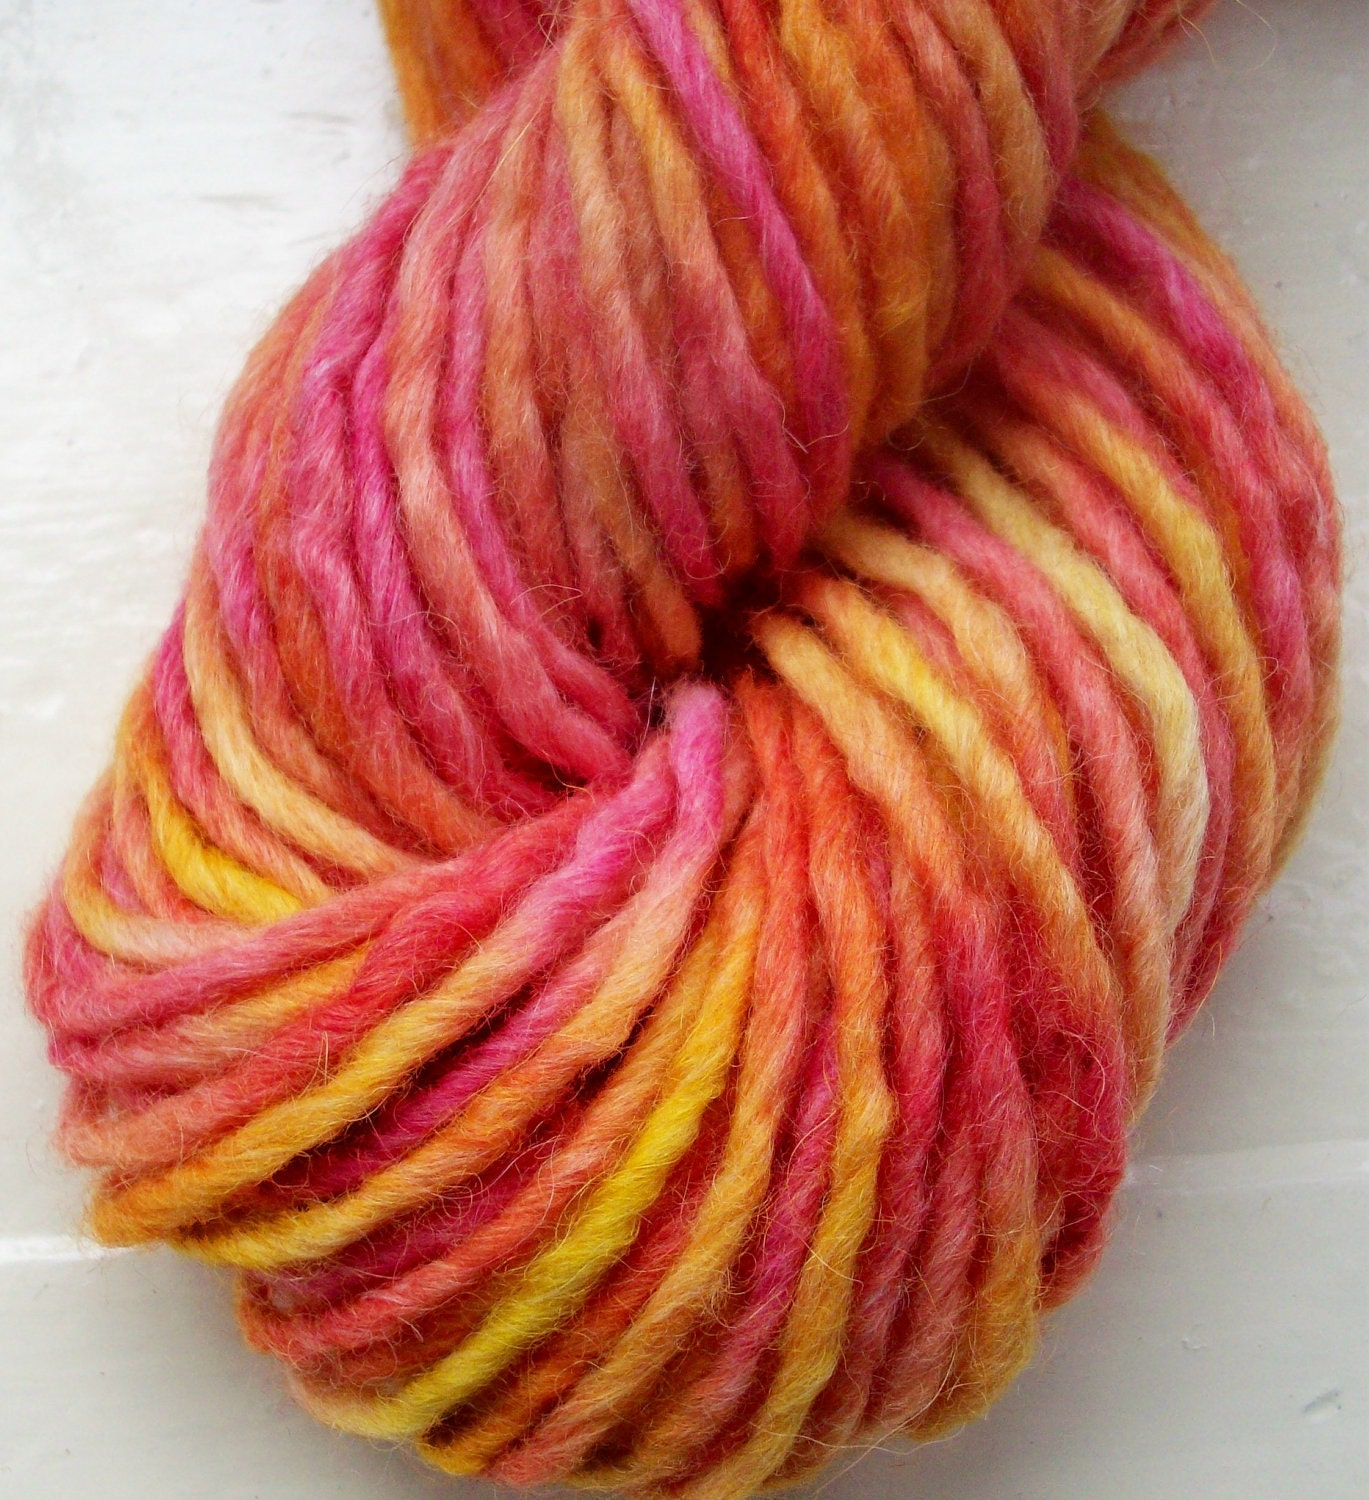 Hand painted merino alpaca yarn - 100g scarlet red yellow Sunrise